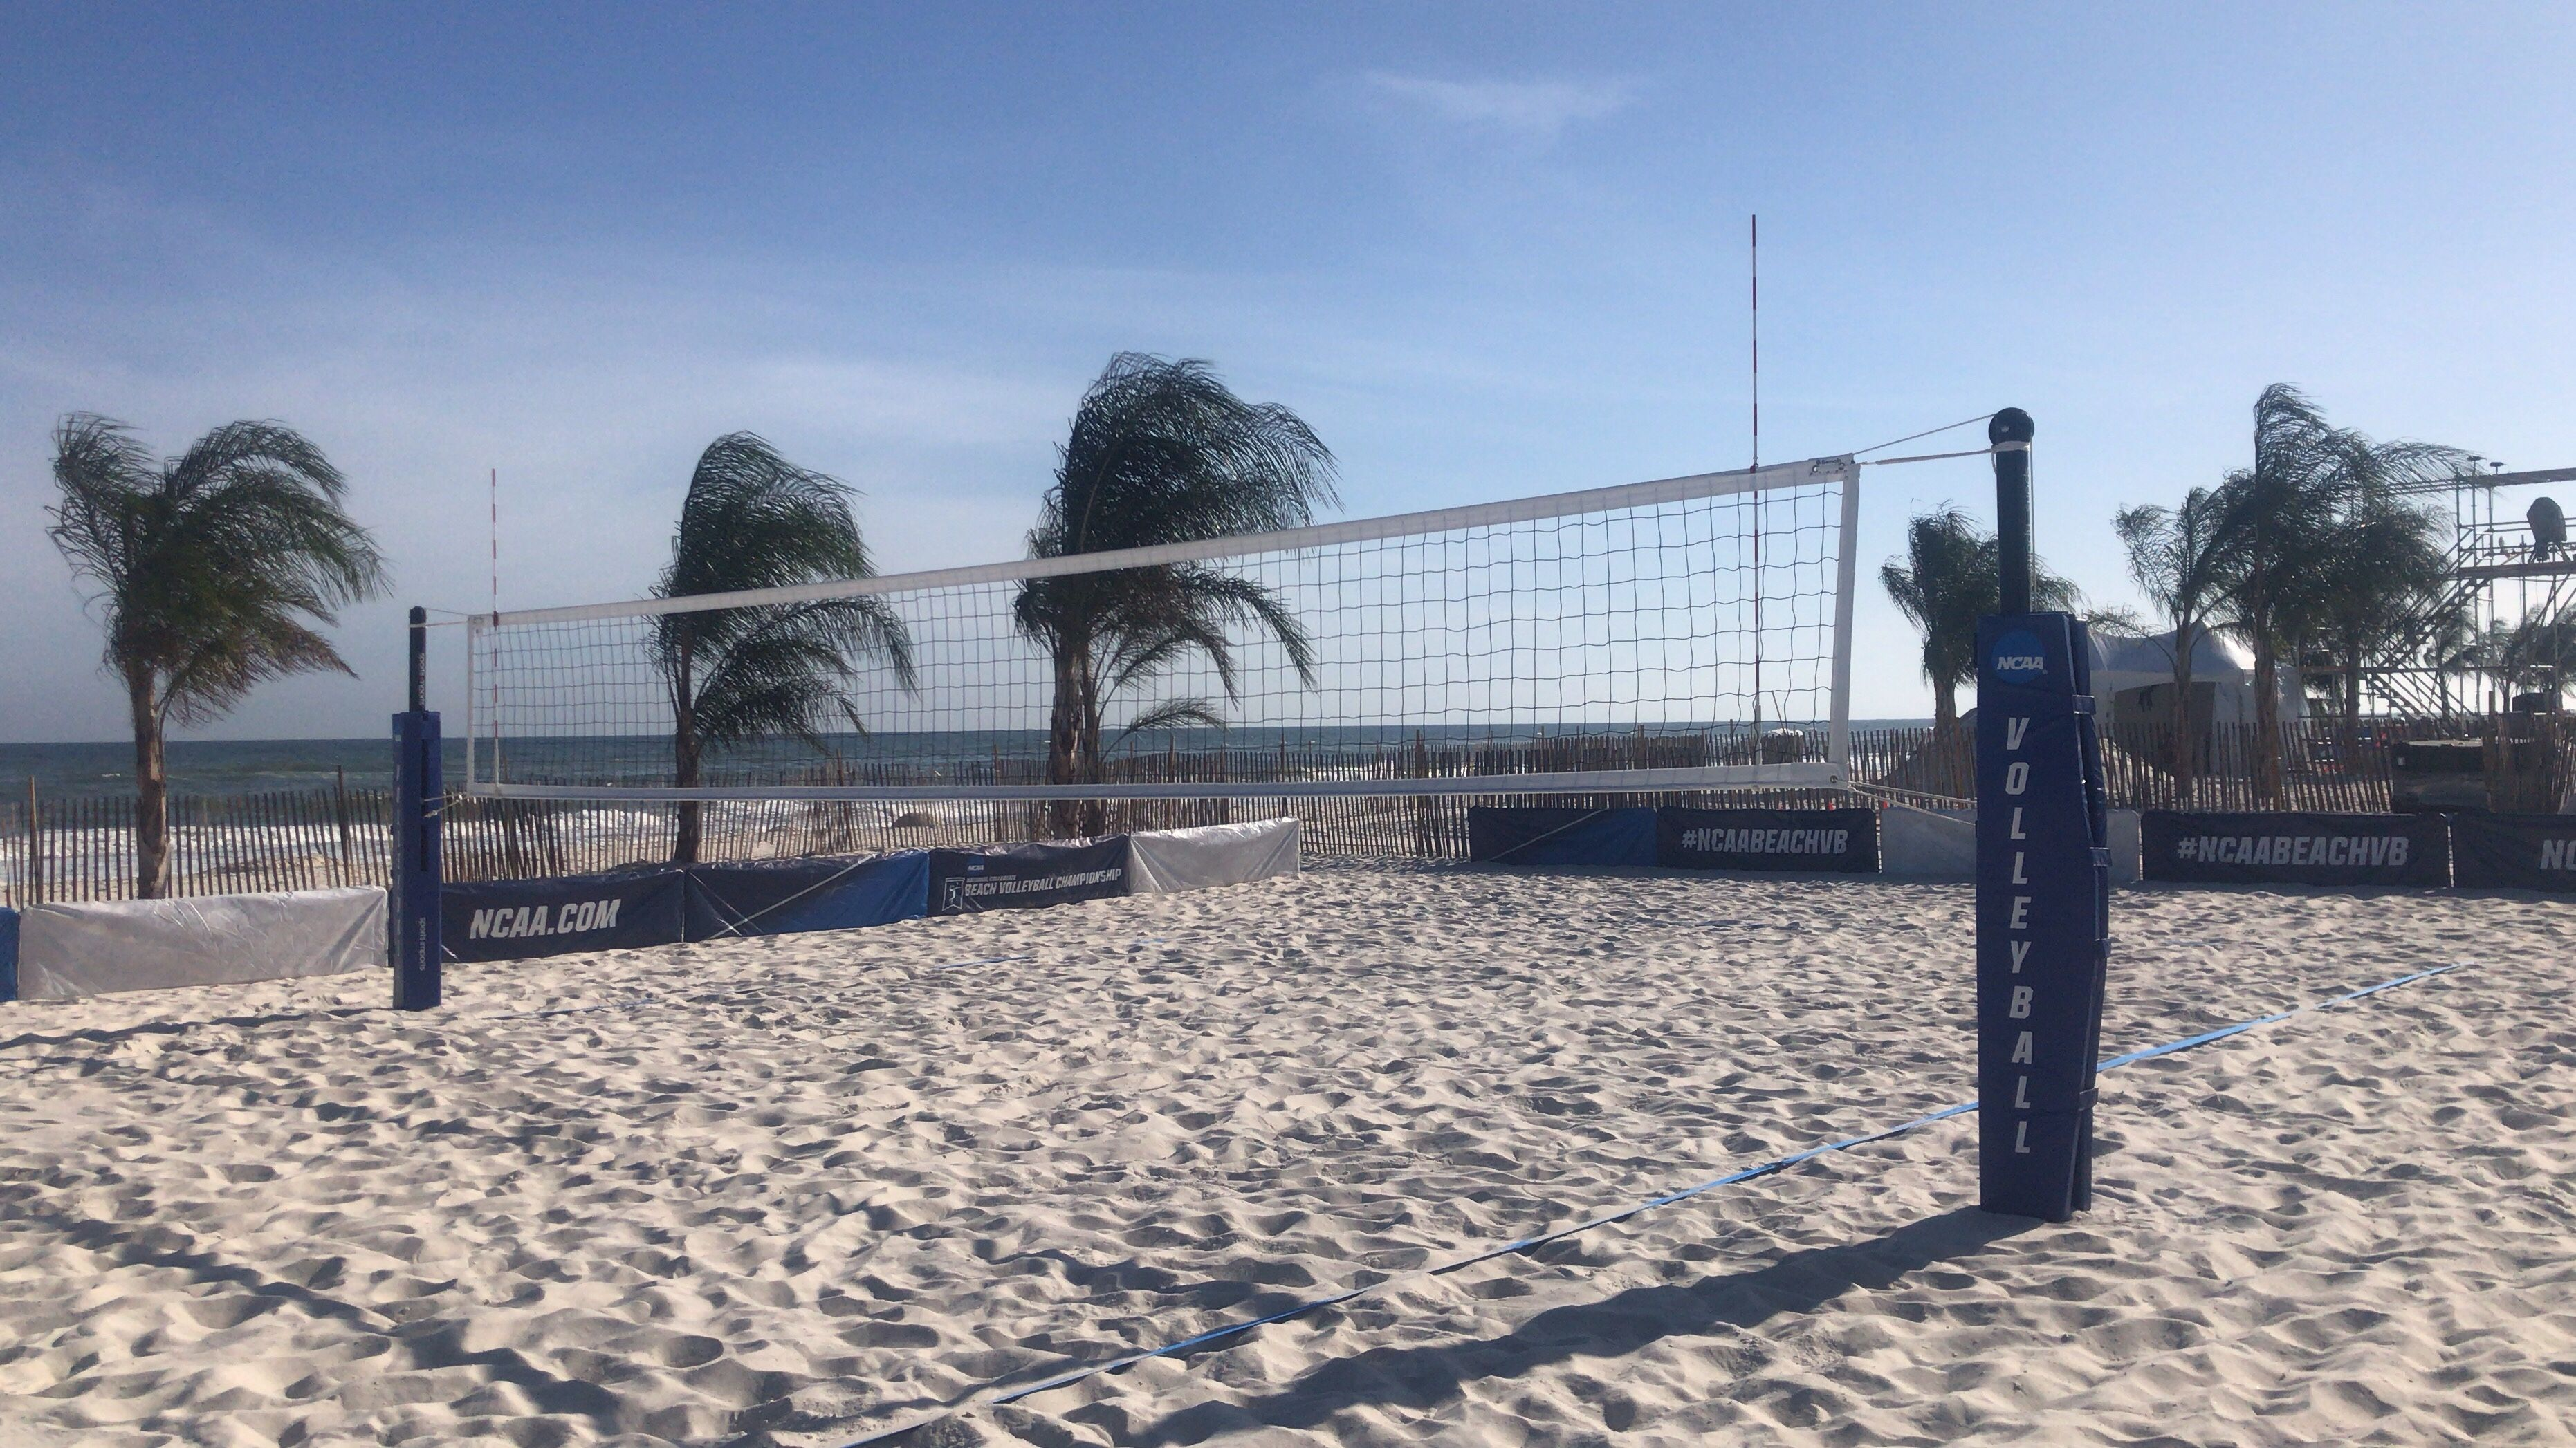 2019 Ncaa Beach Volleyball Championship In Gulf Shores Alabama Volleyball Equipment Beach Volleyball Volleyball